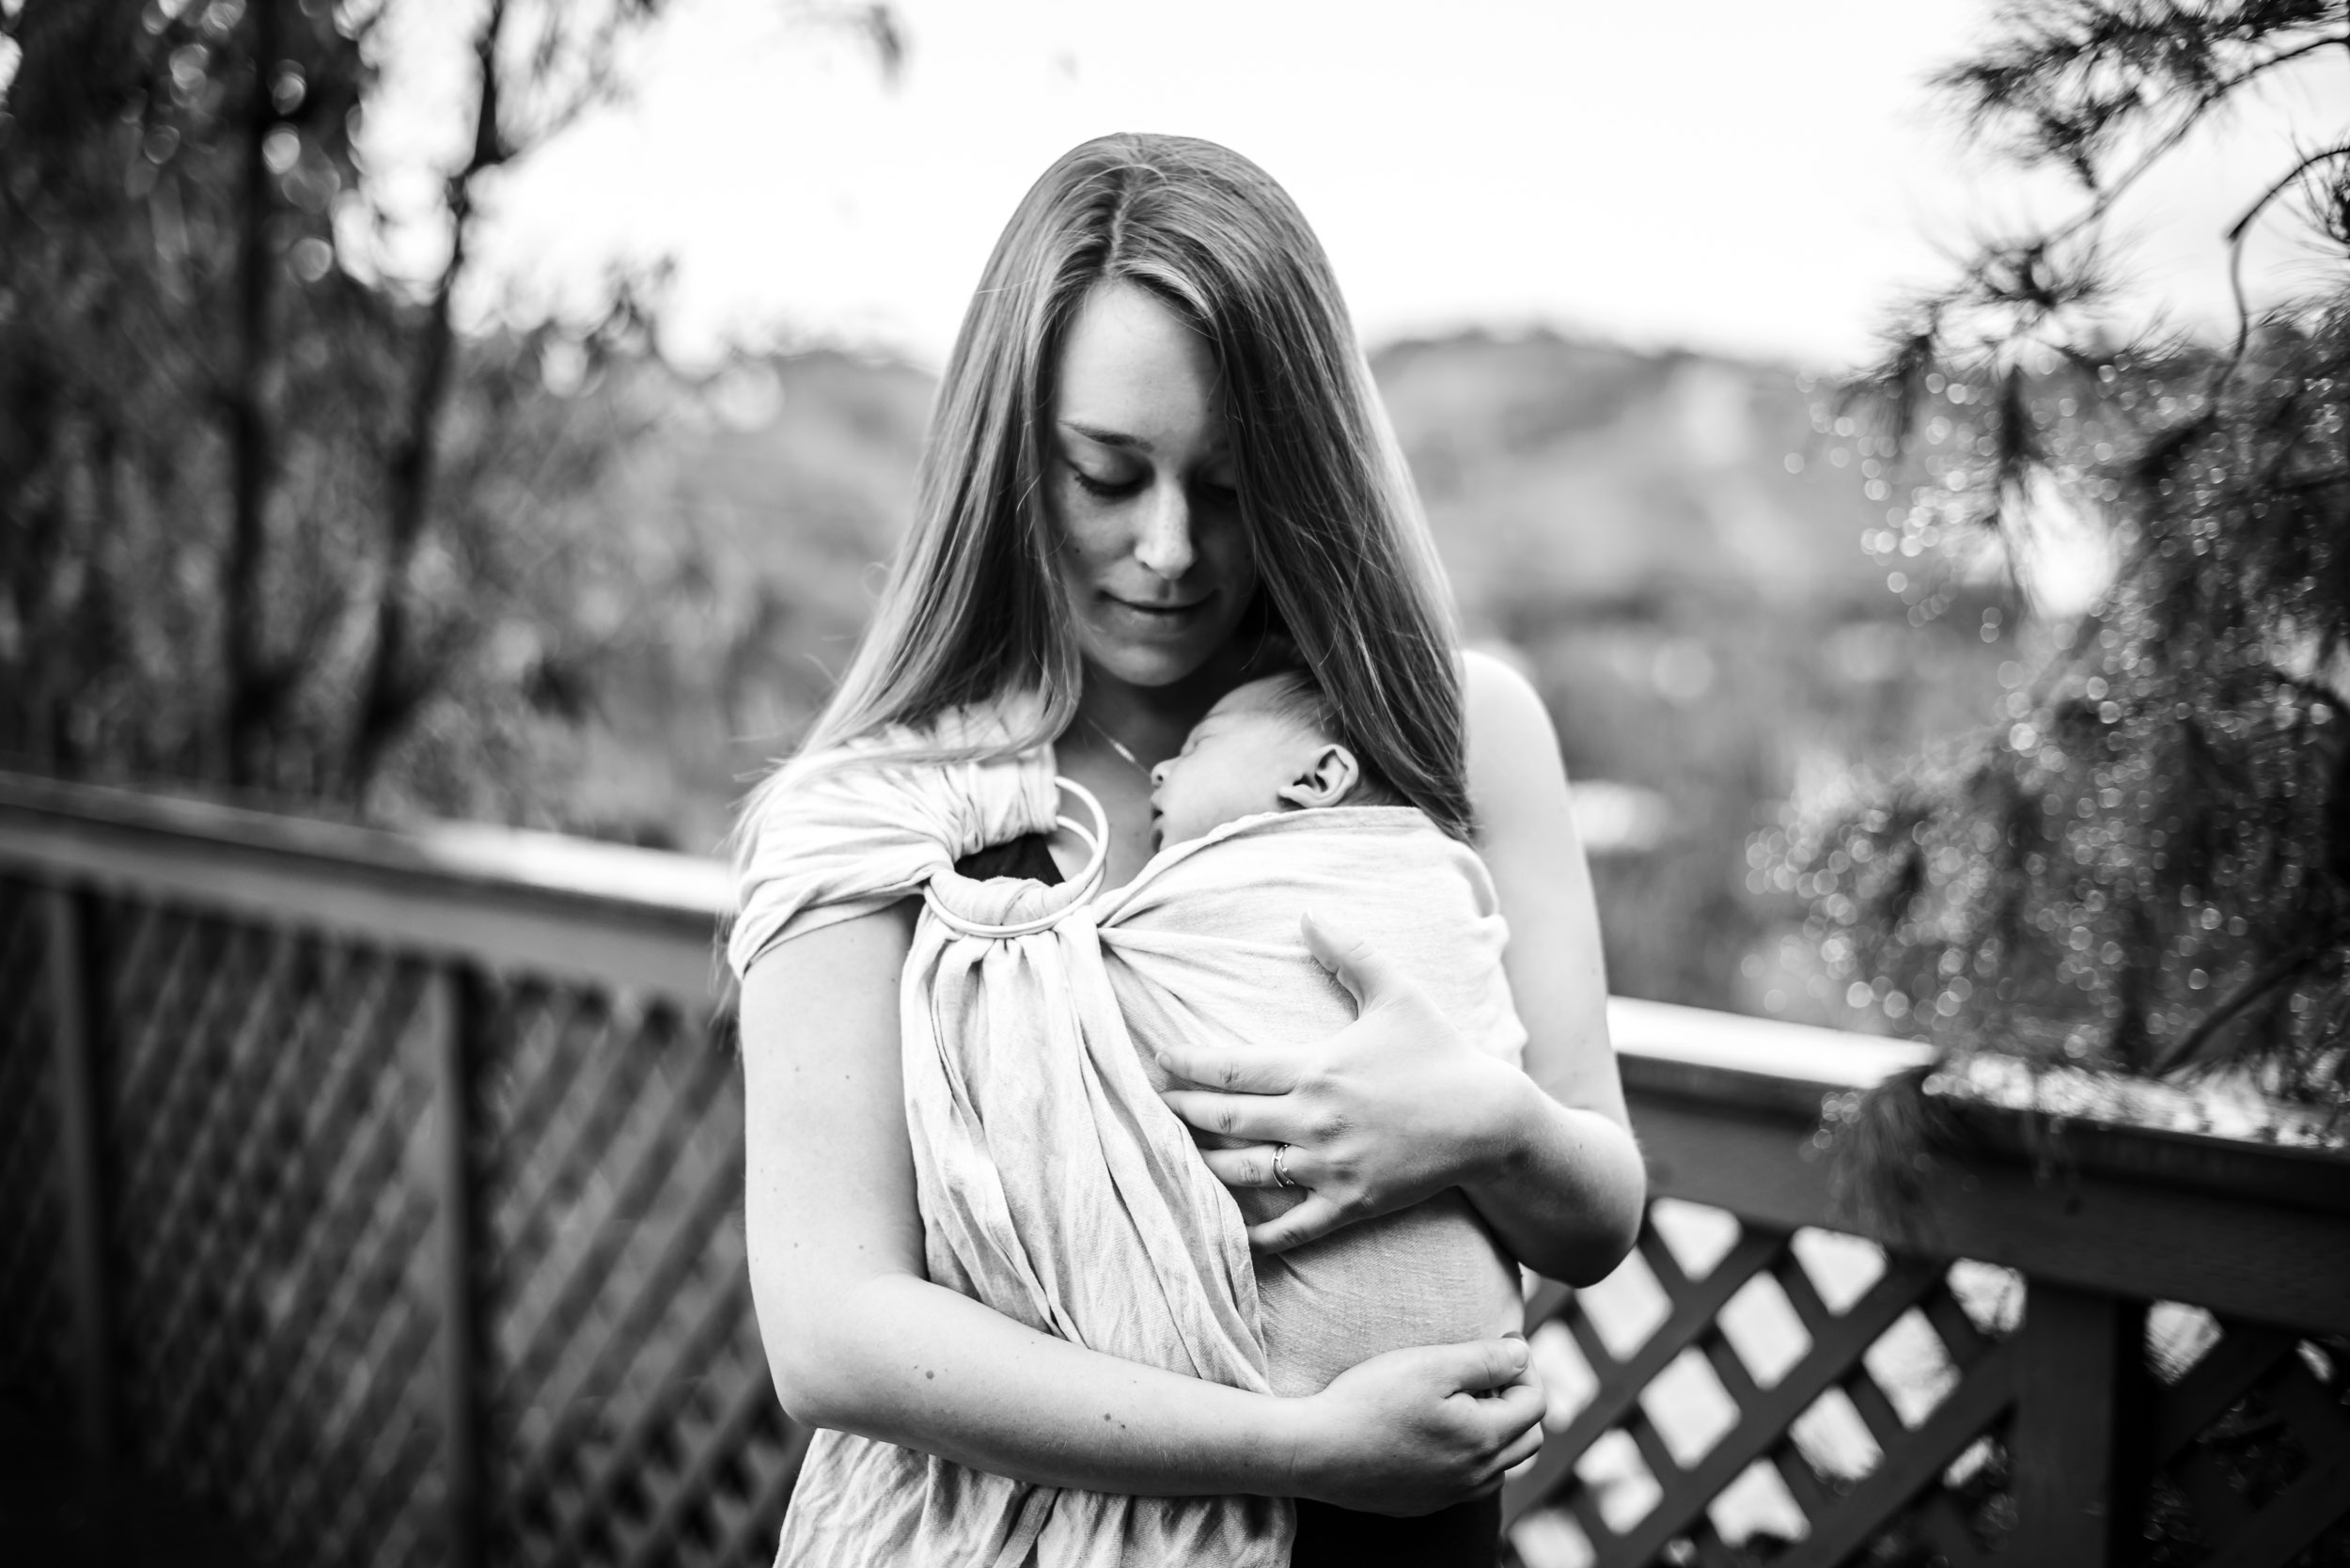 pensacola baby wearing, sakura bloom ring sling, baby wearing photographer, pensacola newborn photographer